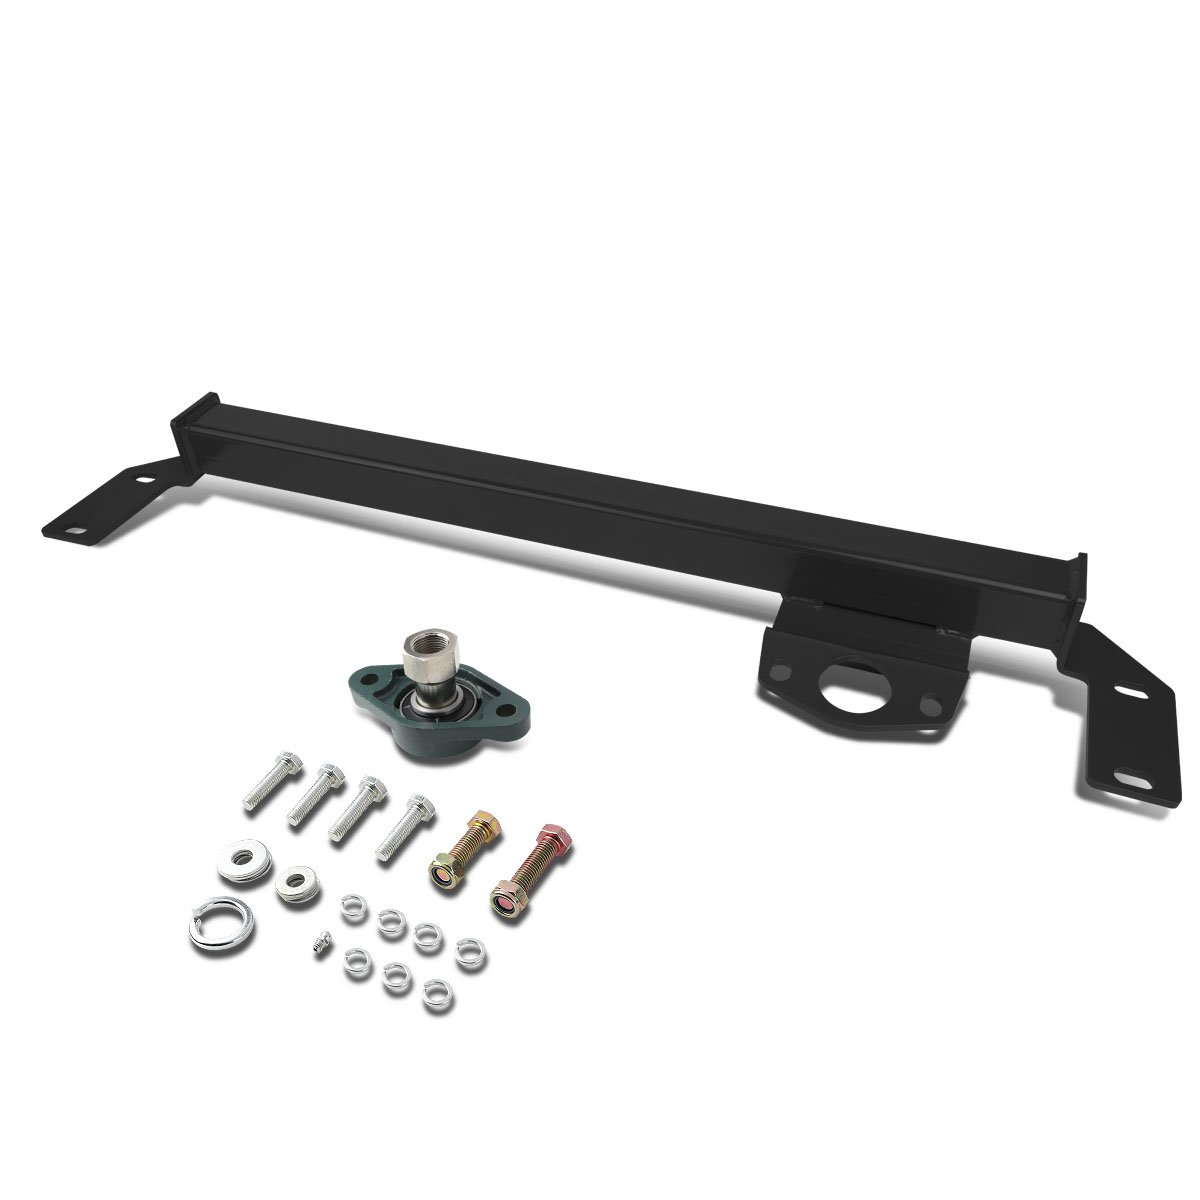 Cheap Steering Gear Box Parts, find Steering Gear Box Parts deals on on yamaha wr, yamaha g9 golf cart accessories, yamaha gas golf cart parts, yamaha golf car parts,